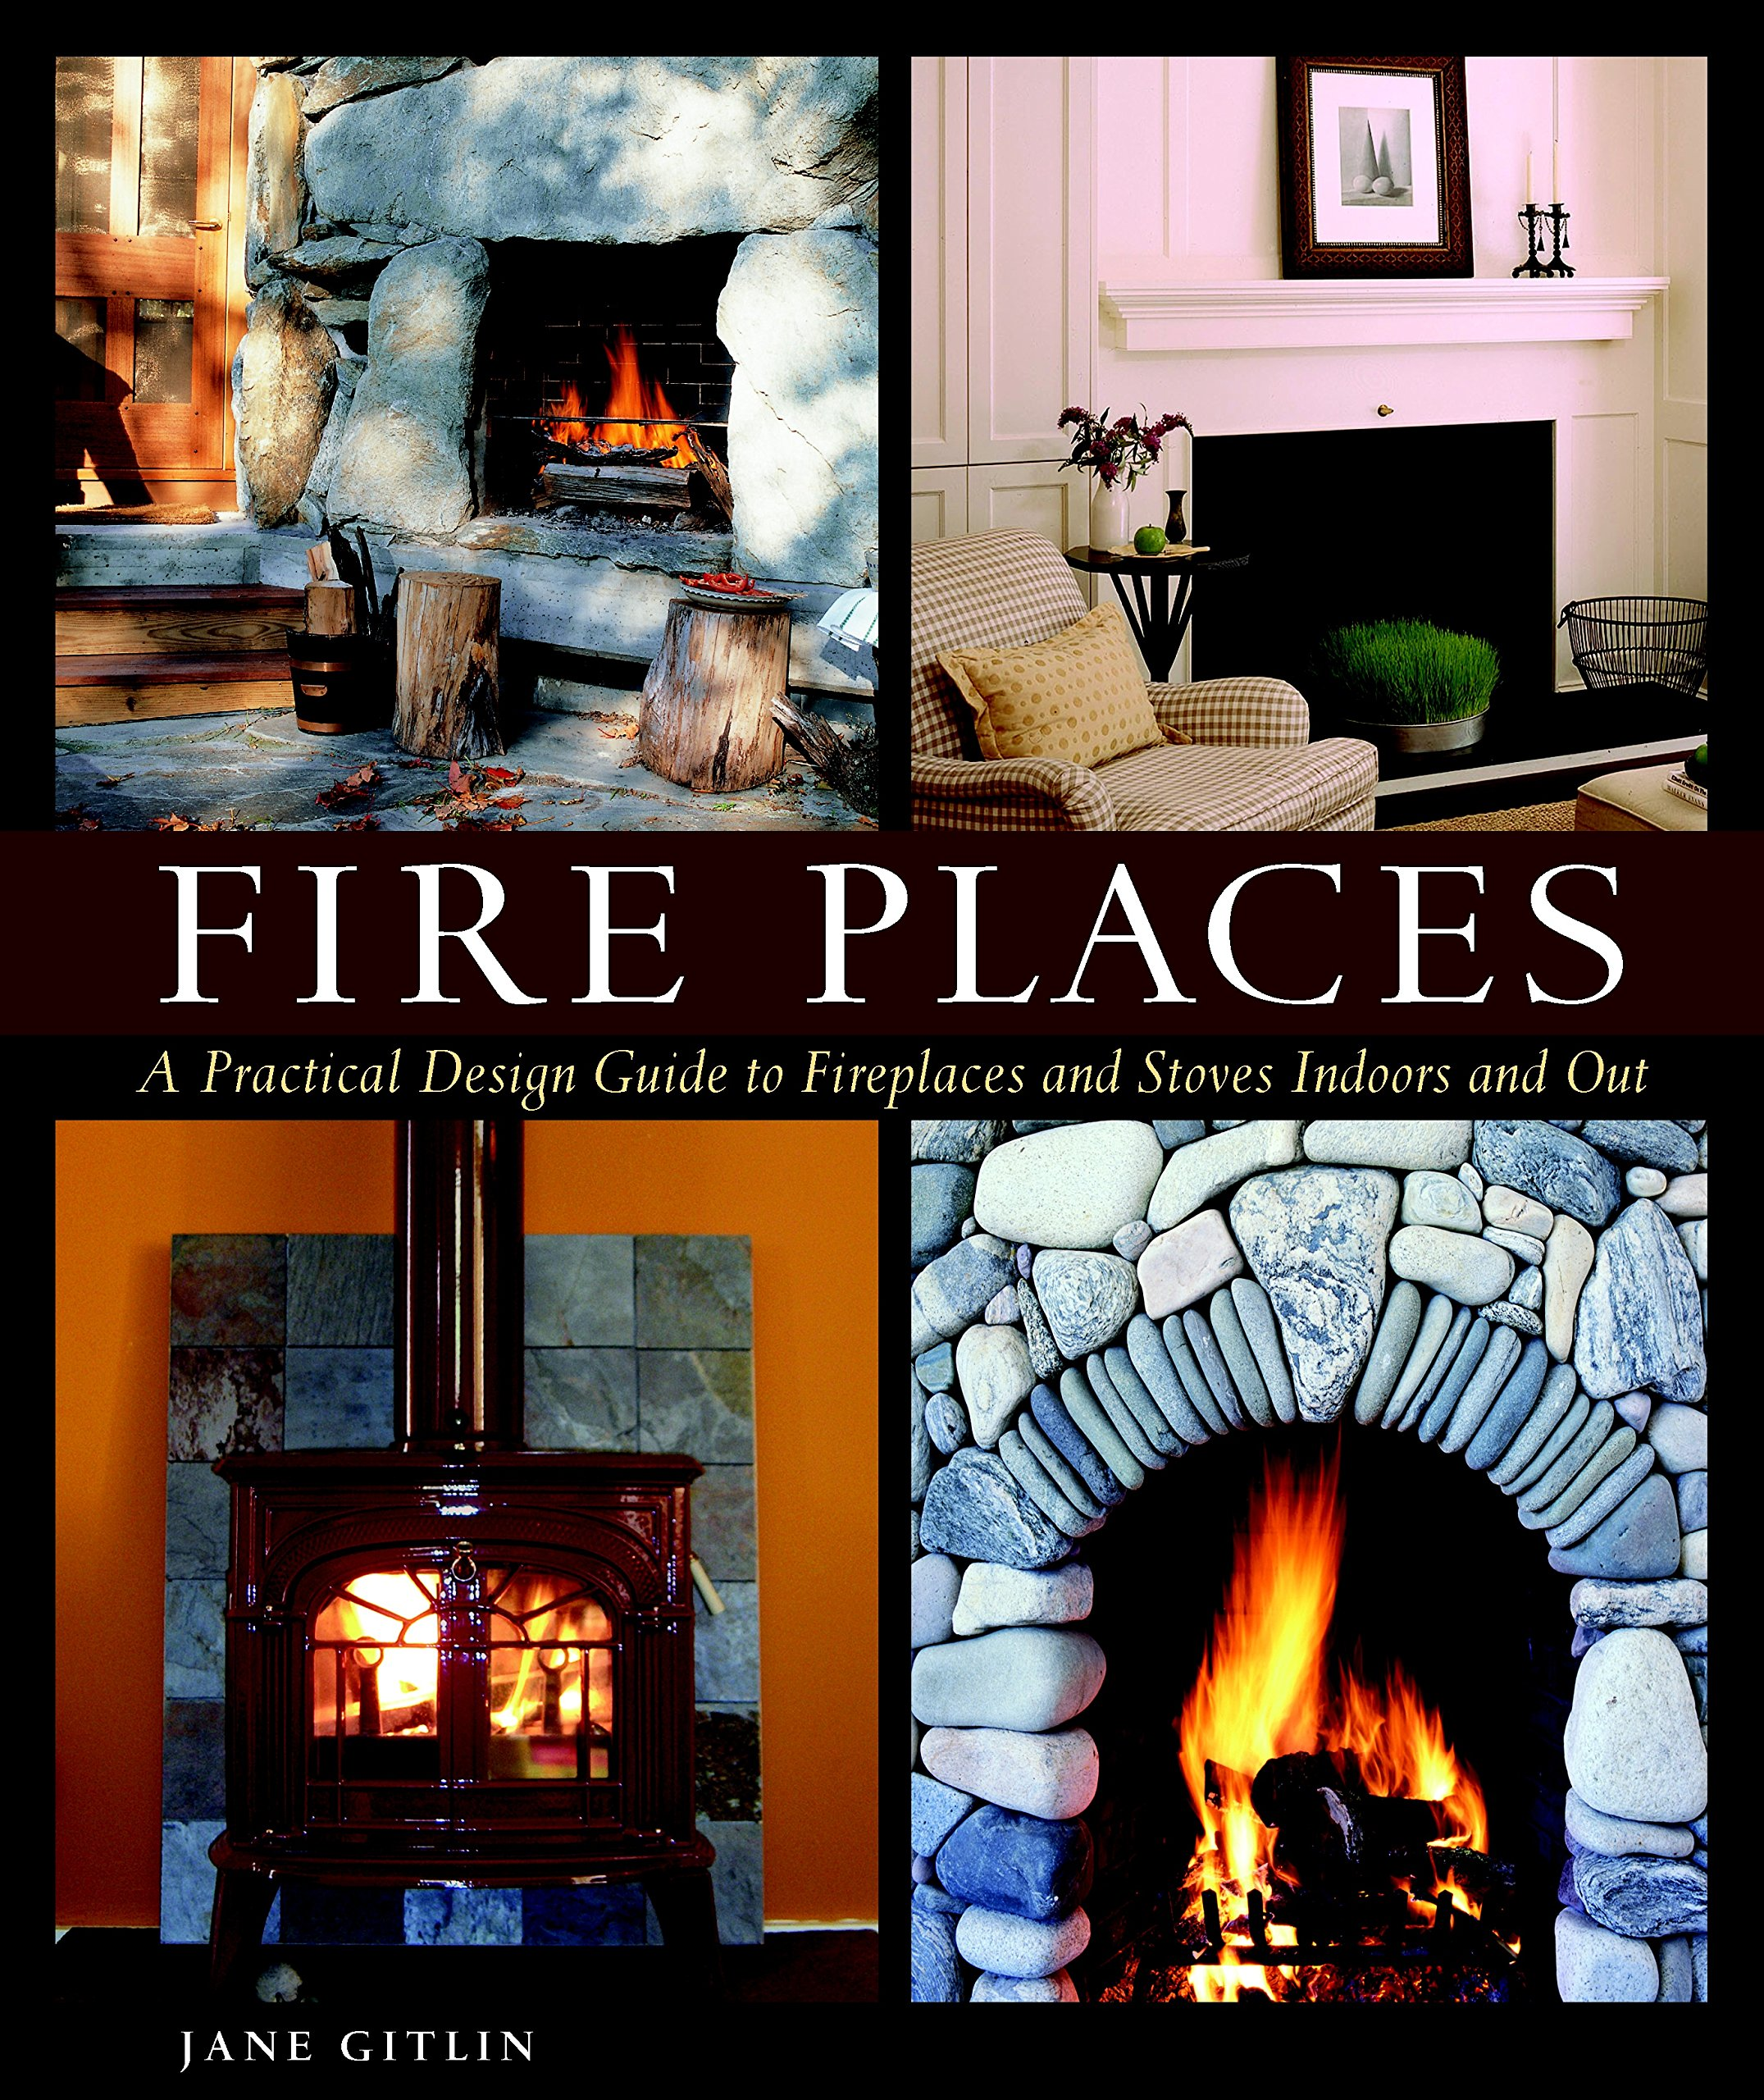 fire places a practical design guide to fireplaces and stoves